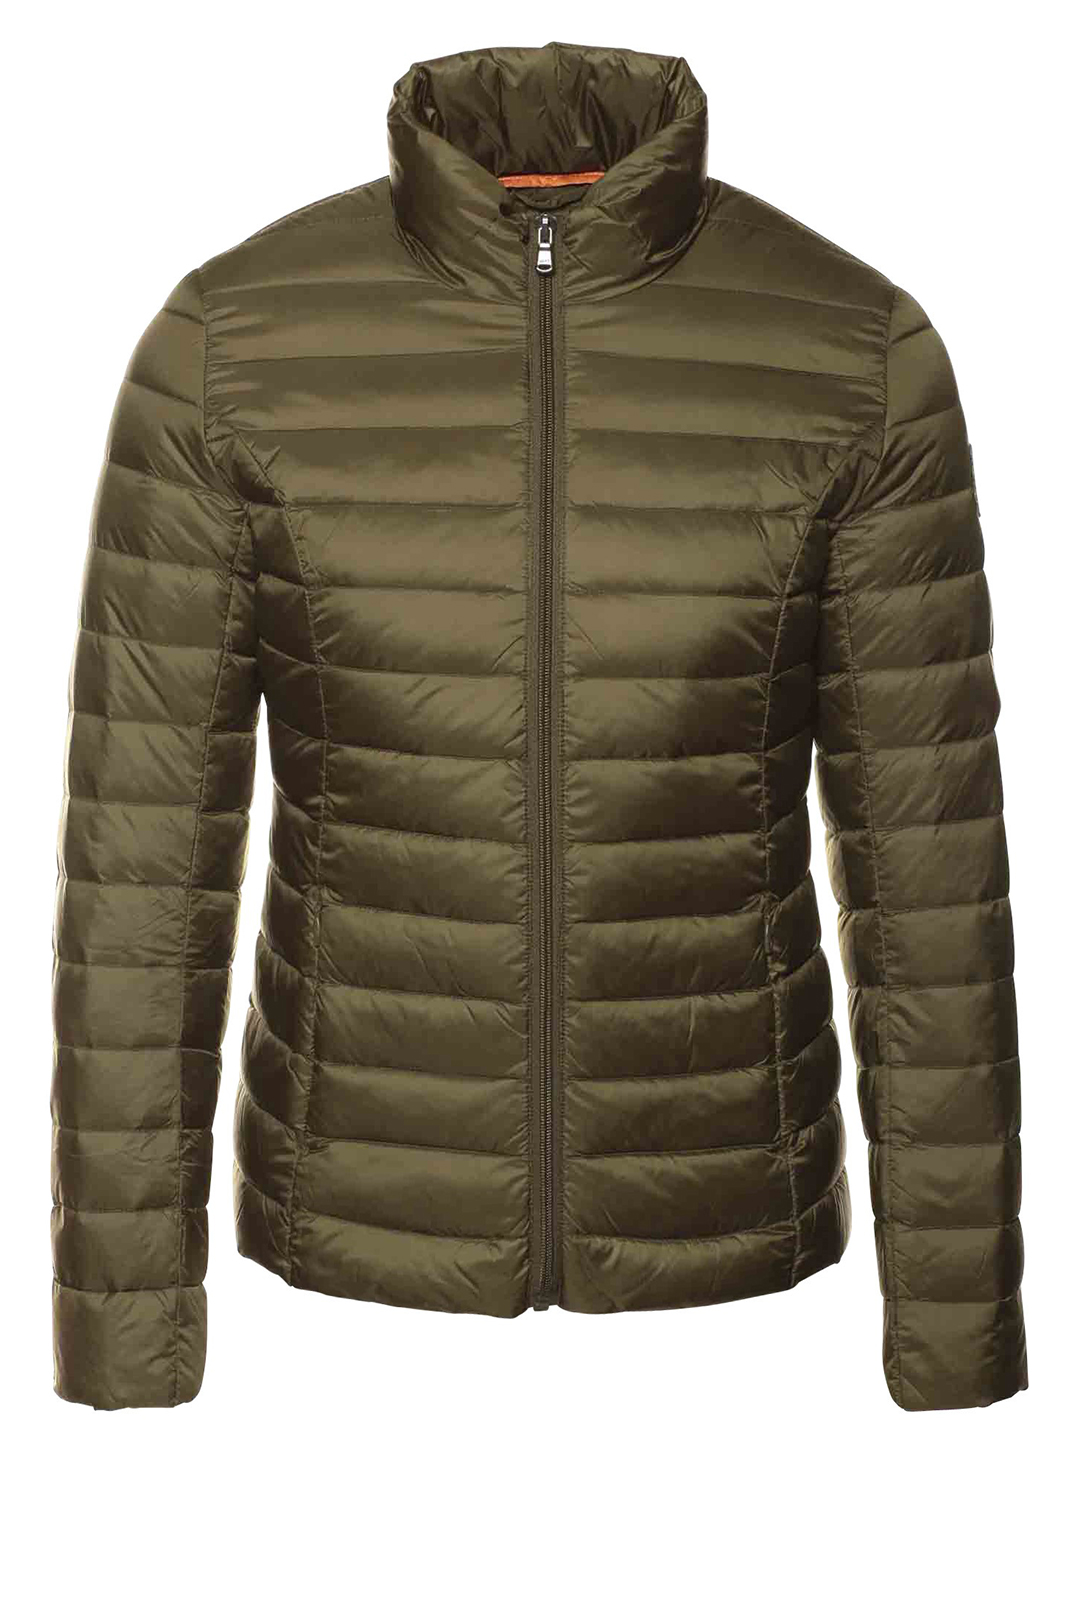 Blouson  Just over the top CHA 616 MORDORE